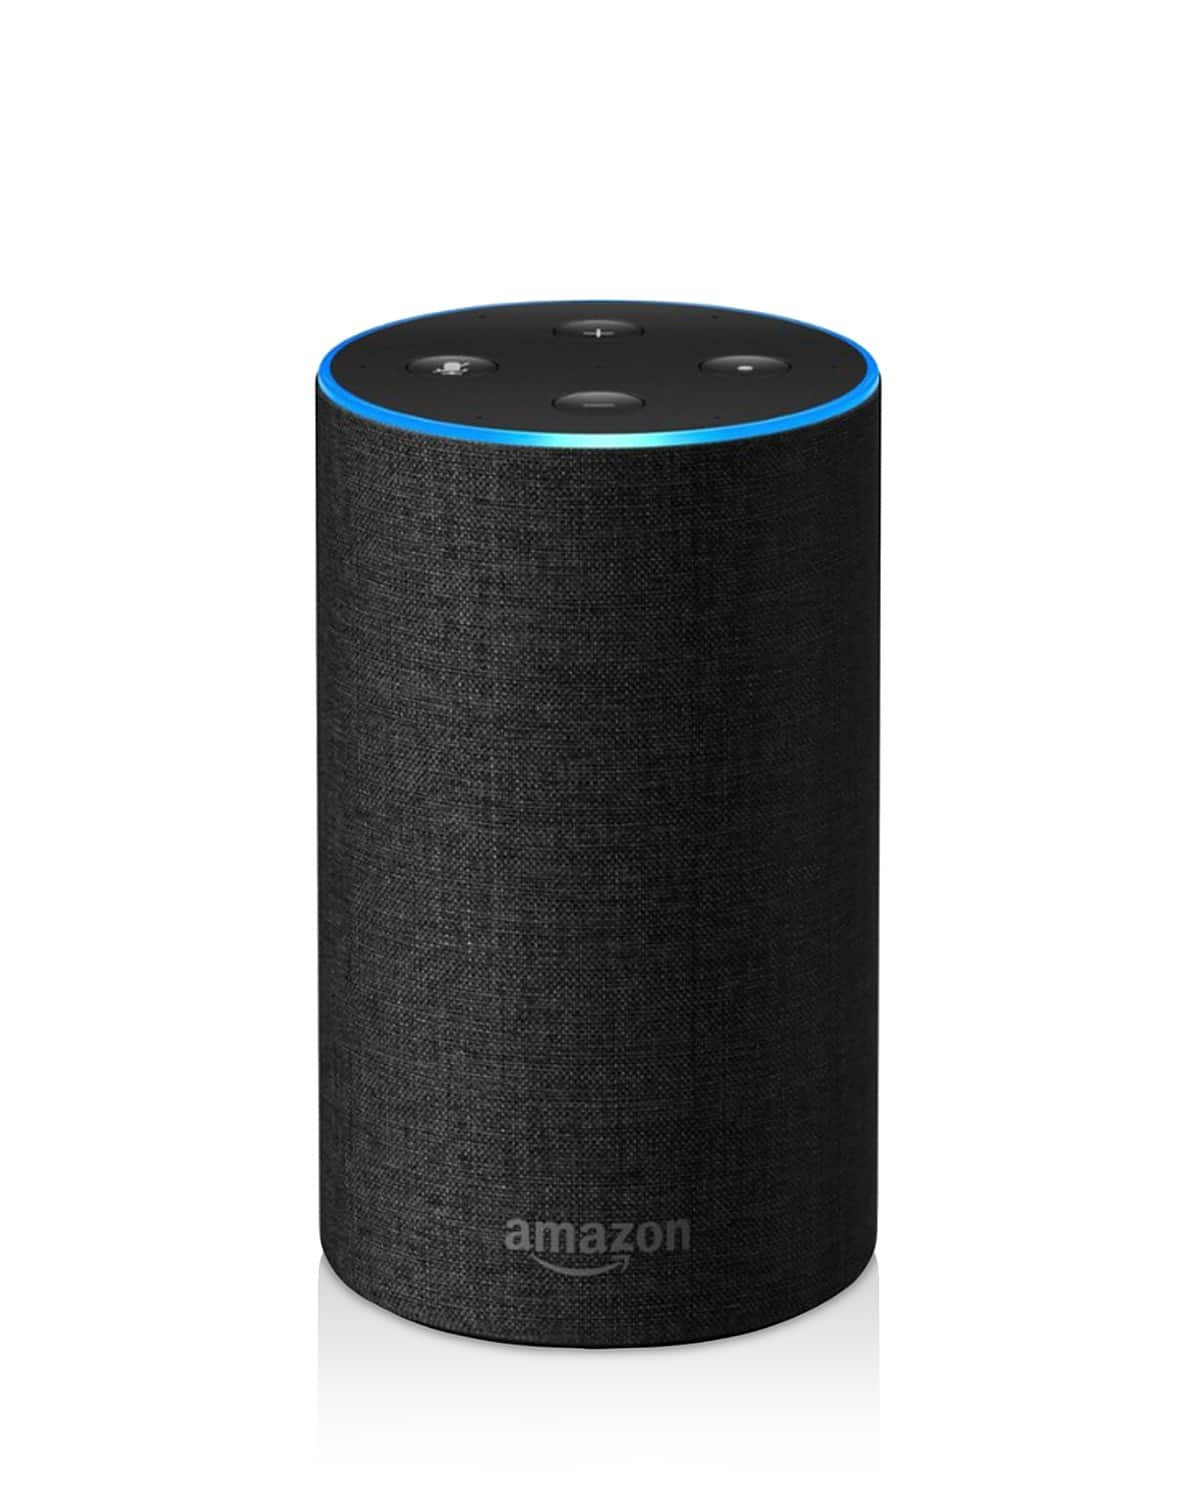 Amazon echo for $53.50 each , need to purchase 3 @ bloomingdales.com